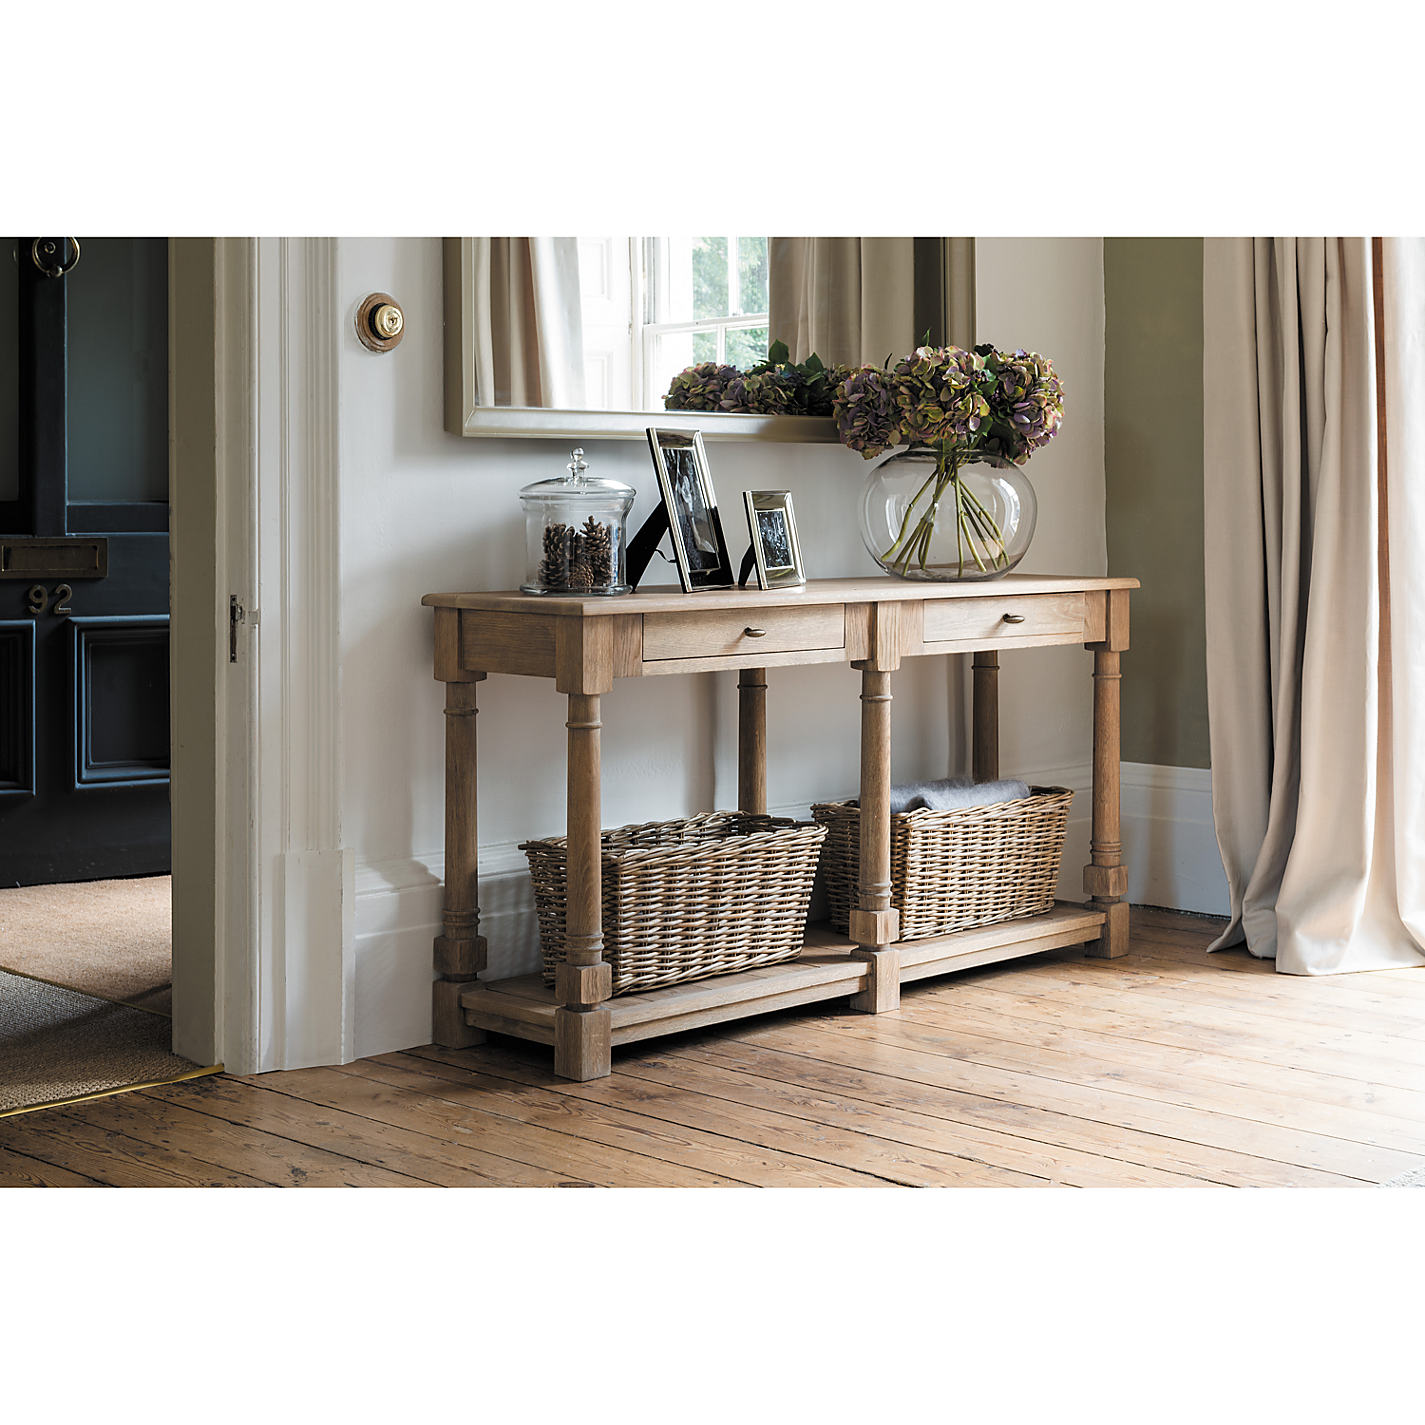 Living Room Furniture Edinburgh buy neptune edinburgh living & dining furniture range | john lewis